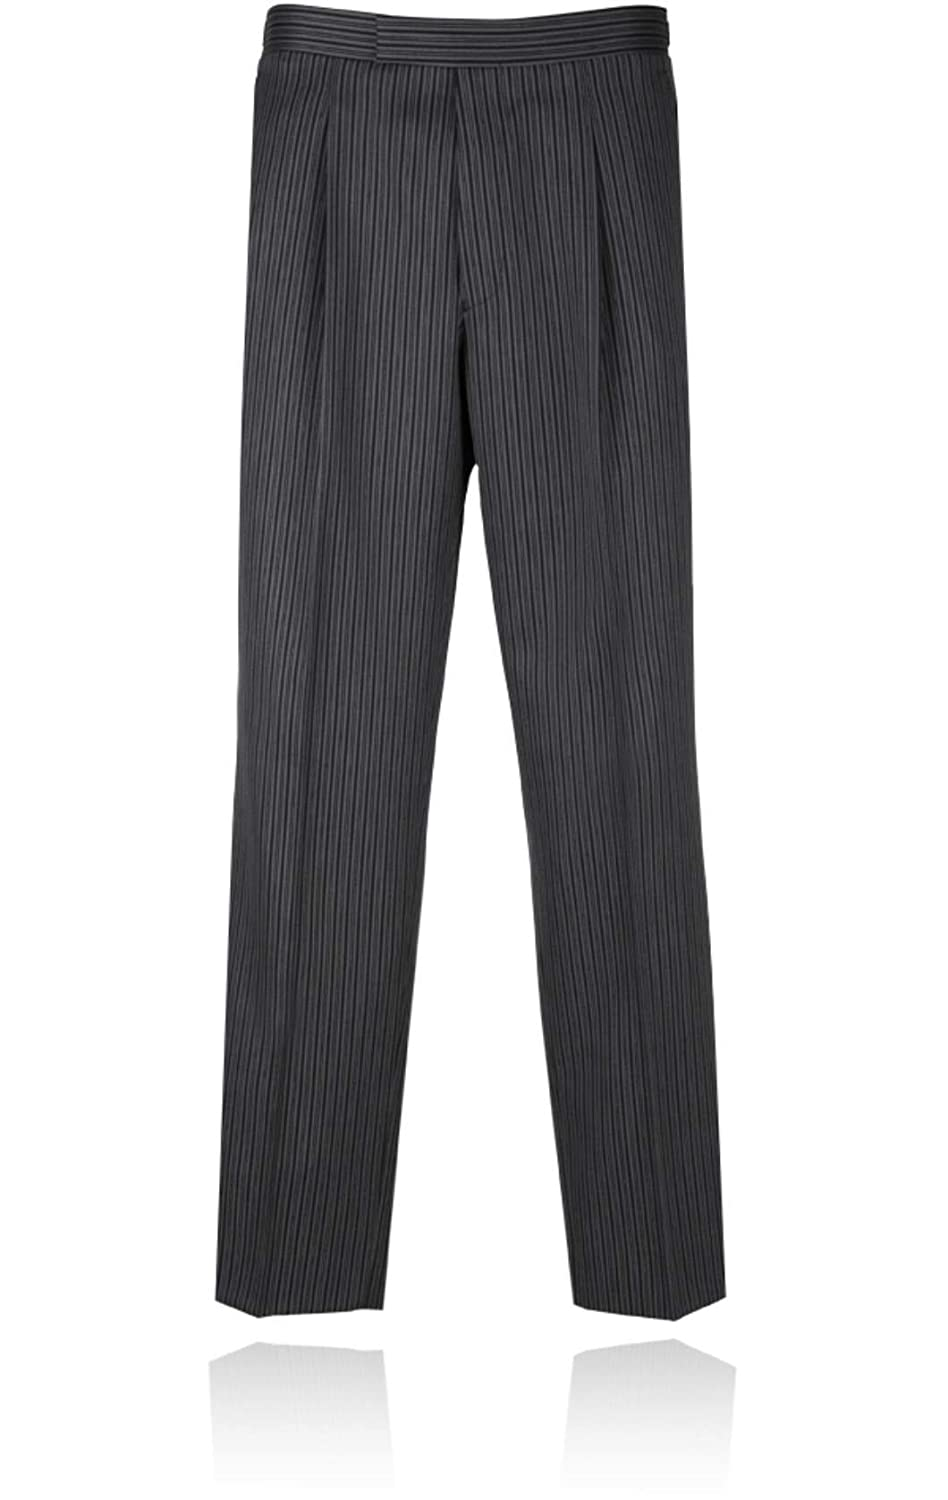 Victorian Men's Formal Wear, Wedding Tuxedo Mens Black & Grey Striped Morning Suit Trousers £50.00 AT vintagedancer.com